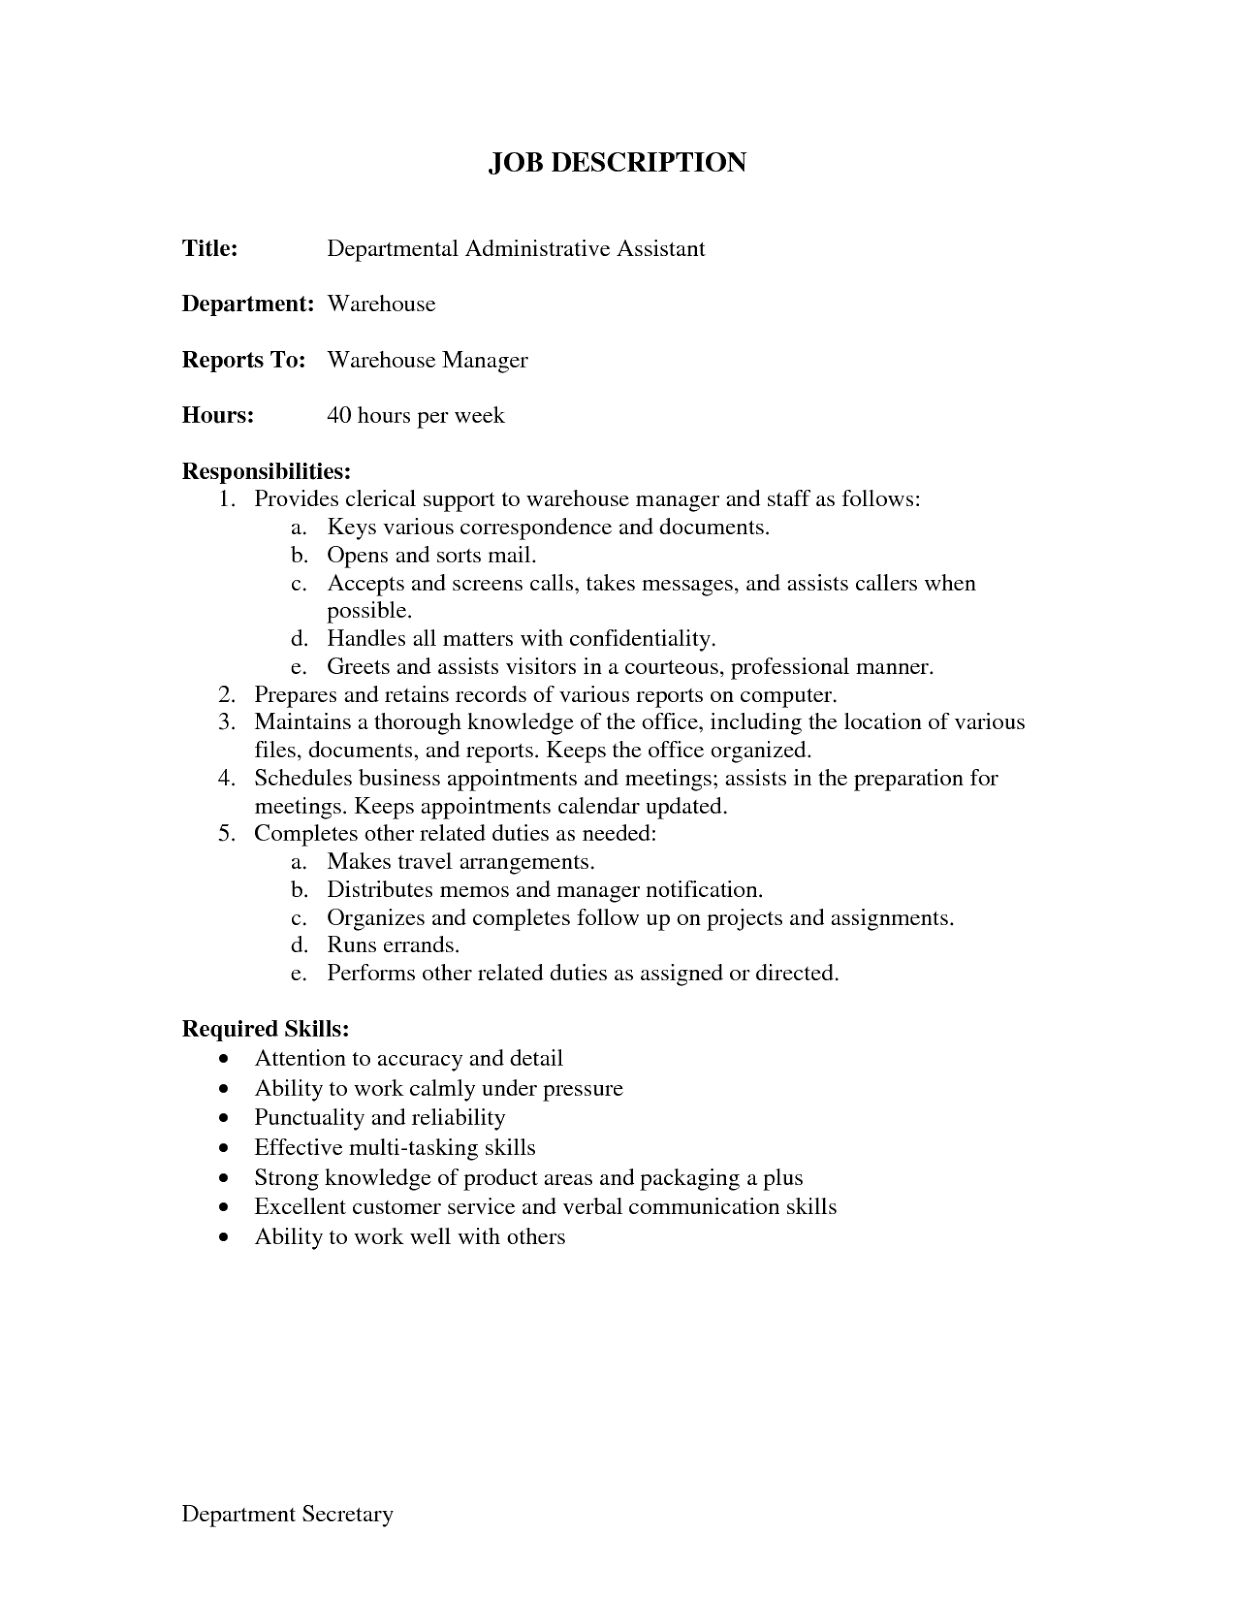 Job Description For Administrative Assistant For Resume Inside Administrative Assistant Responsibilities